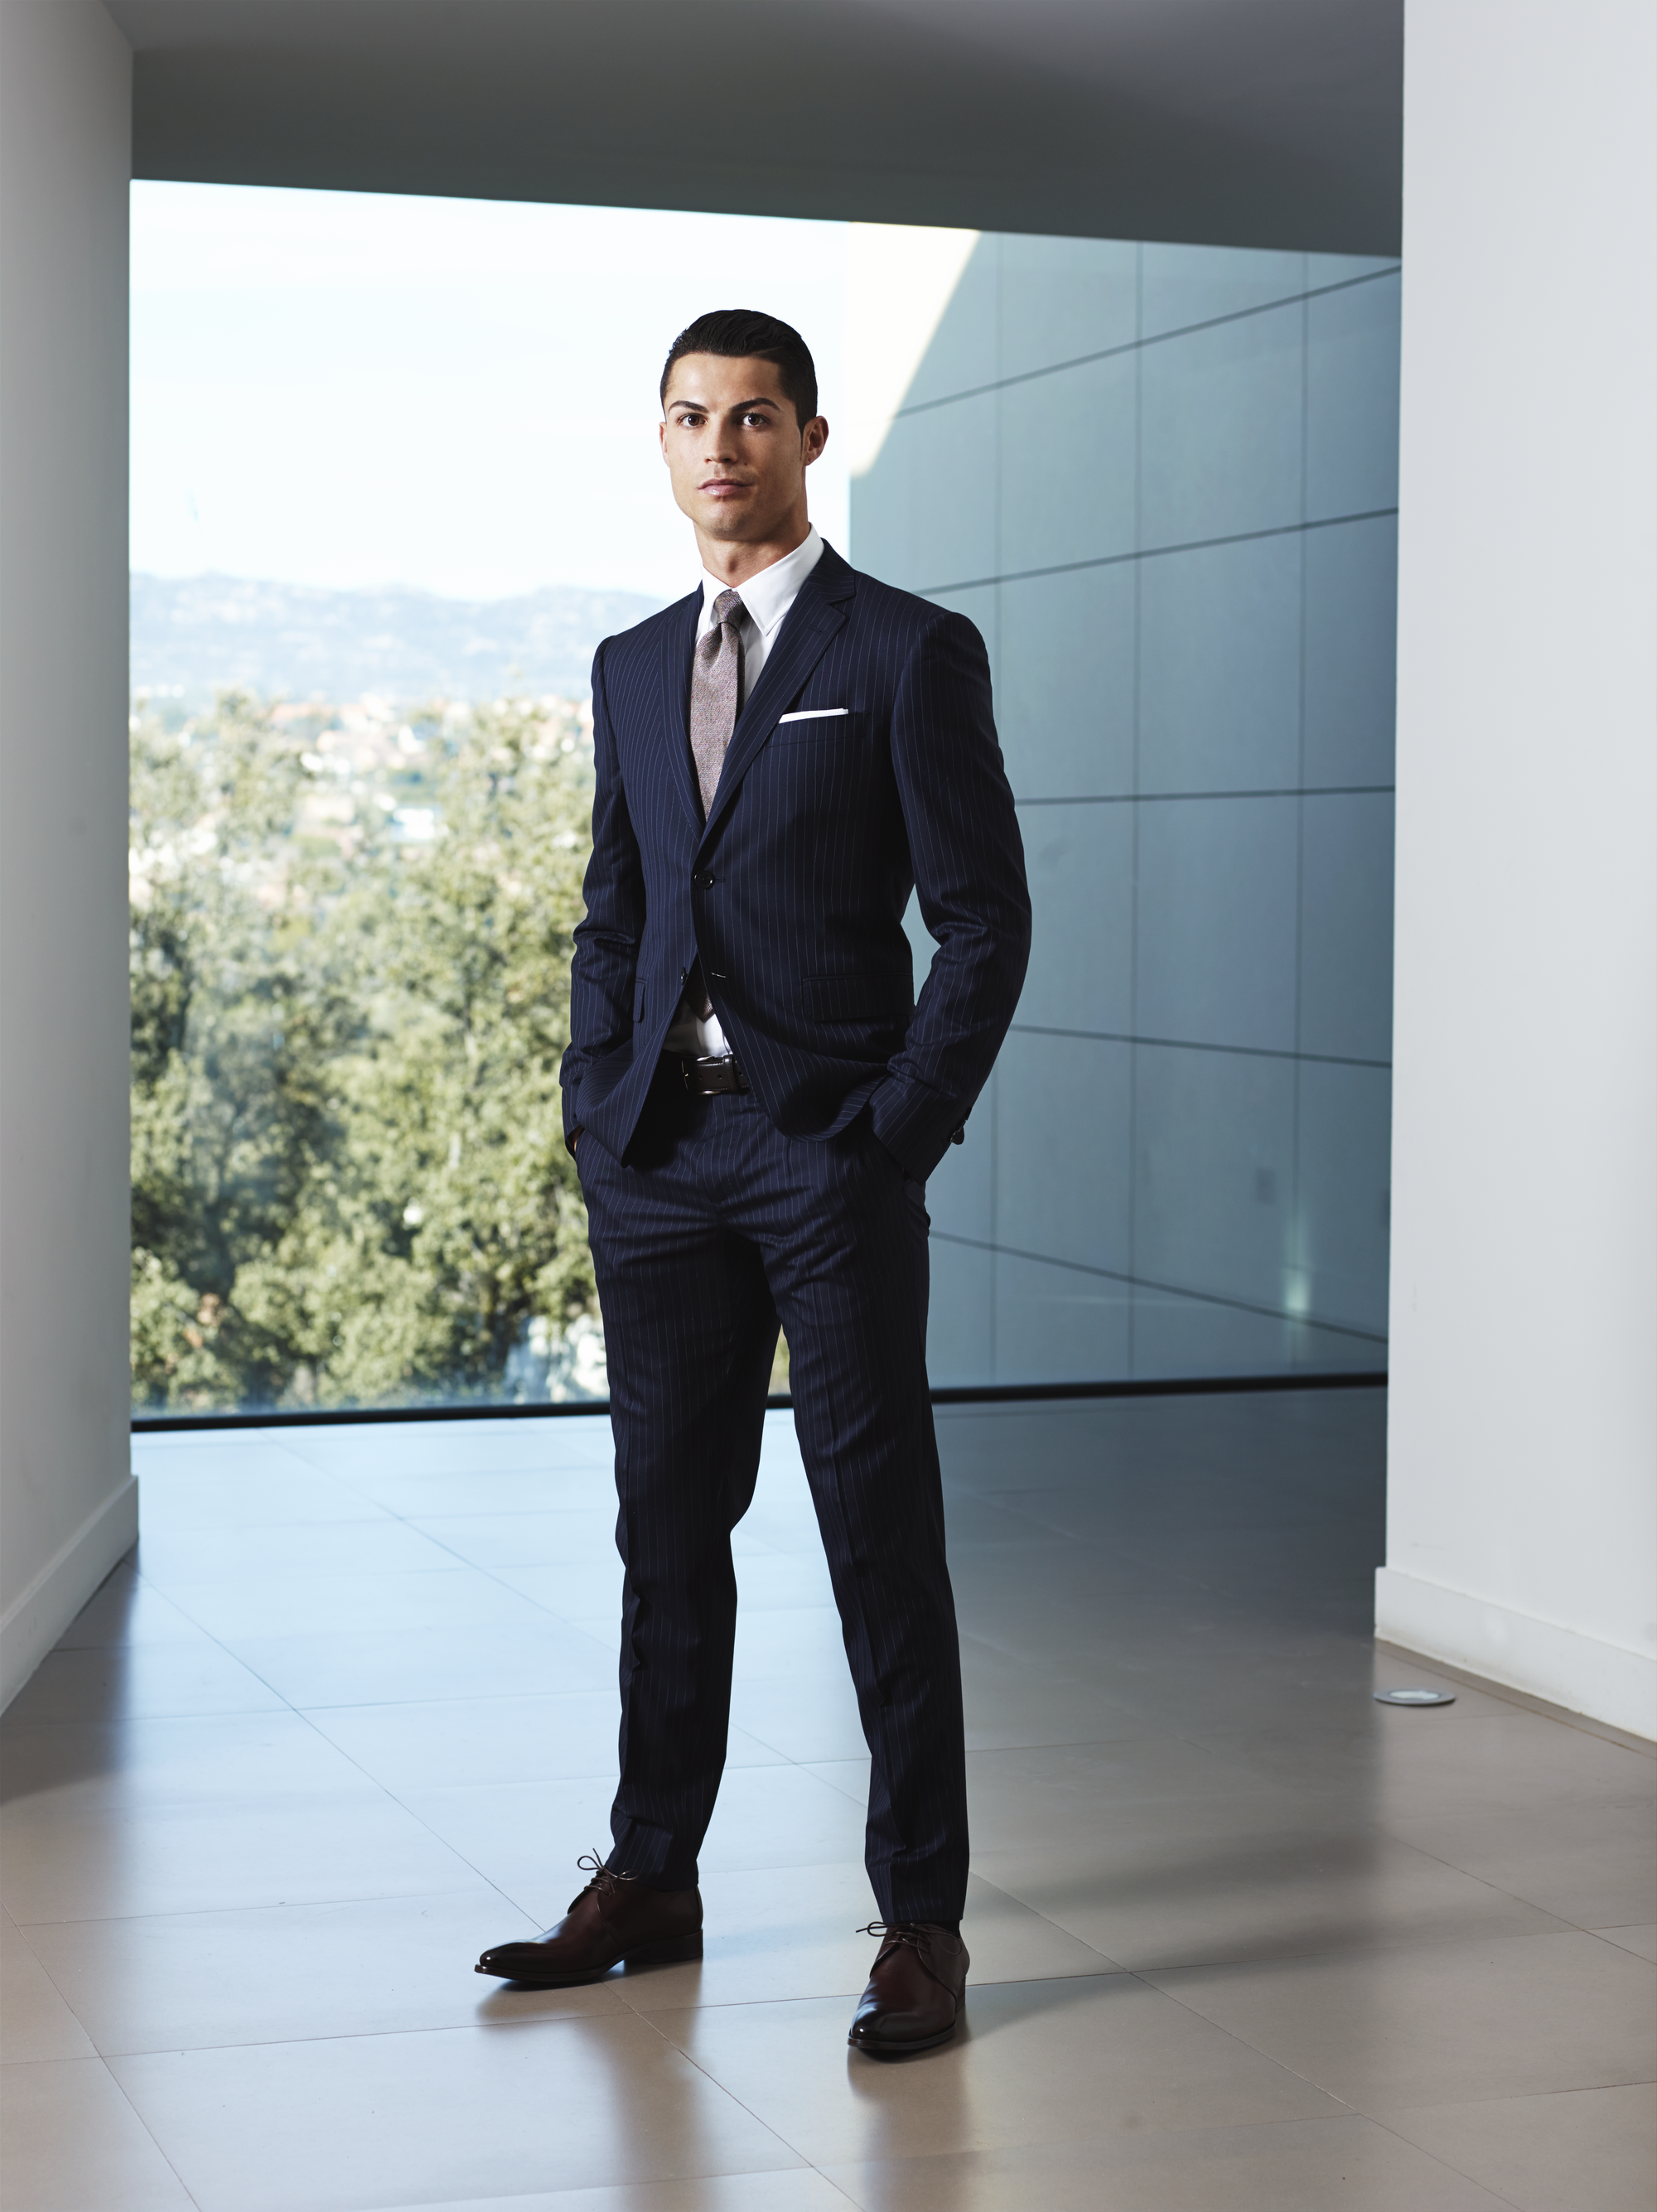 Cristiano Ronaldo In A Sacoor Brothers Blue Suit Cr7 Pinterest Fashion Suits Suits And